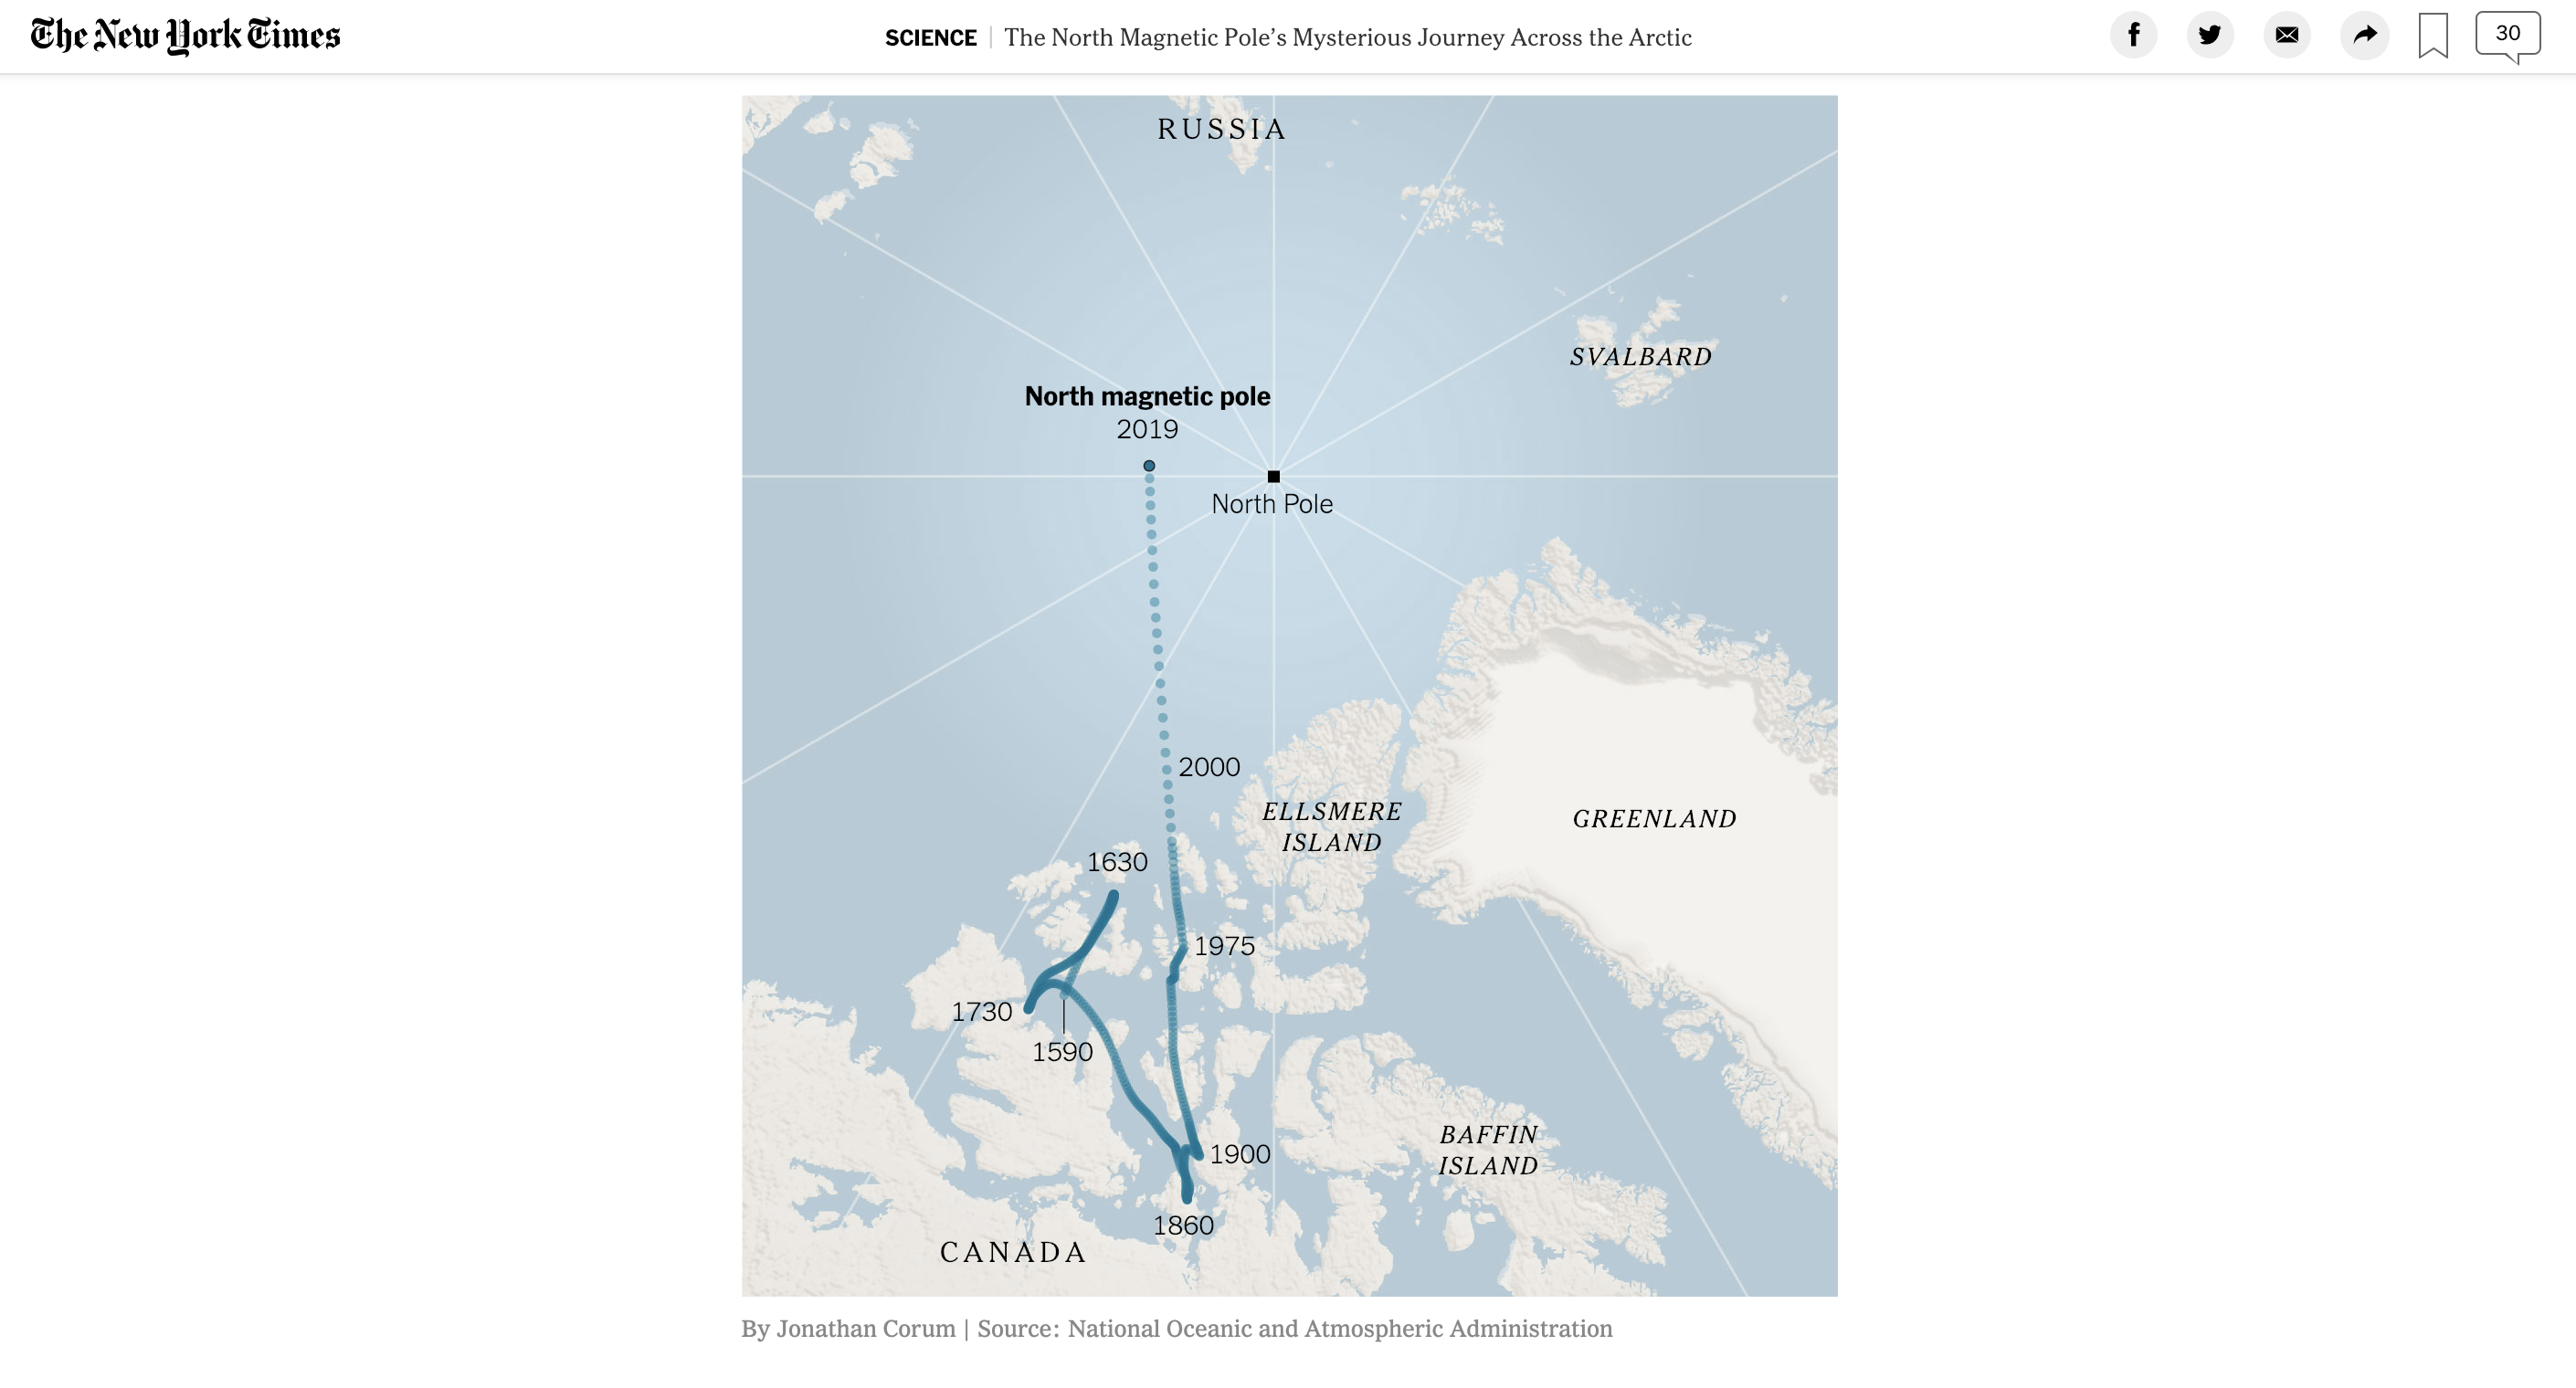 Screenshot from https://www.nytimes.com/2019/02/04/science/north-magnetic-pole-model.html